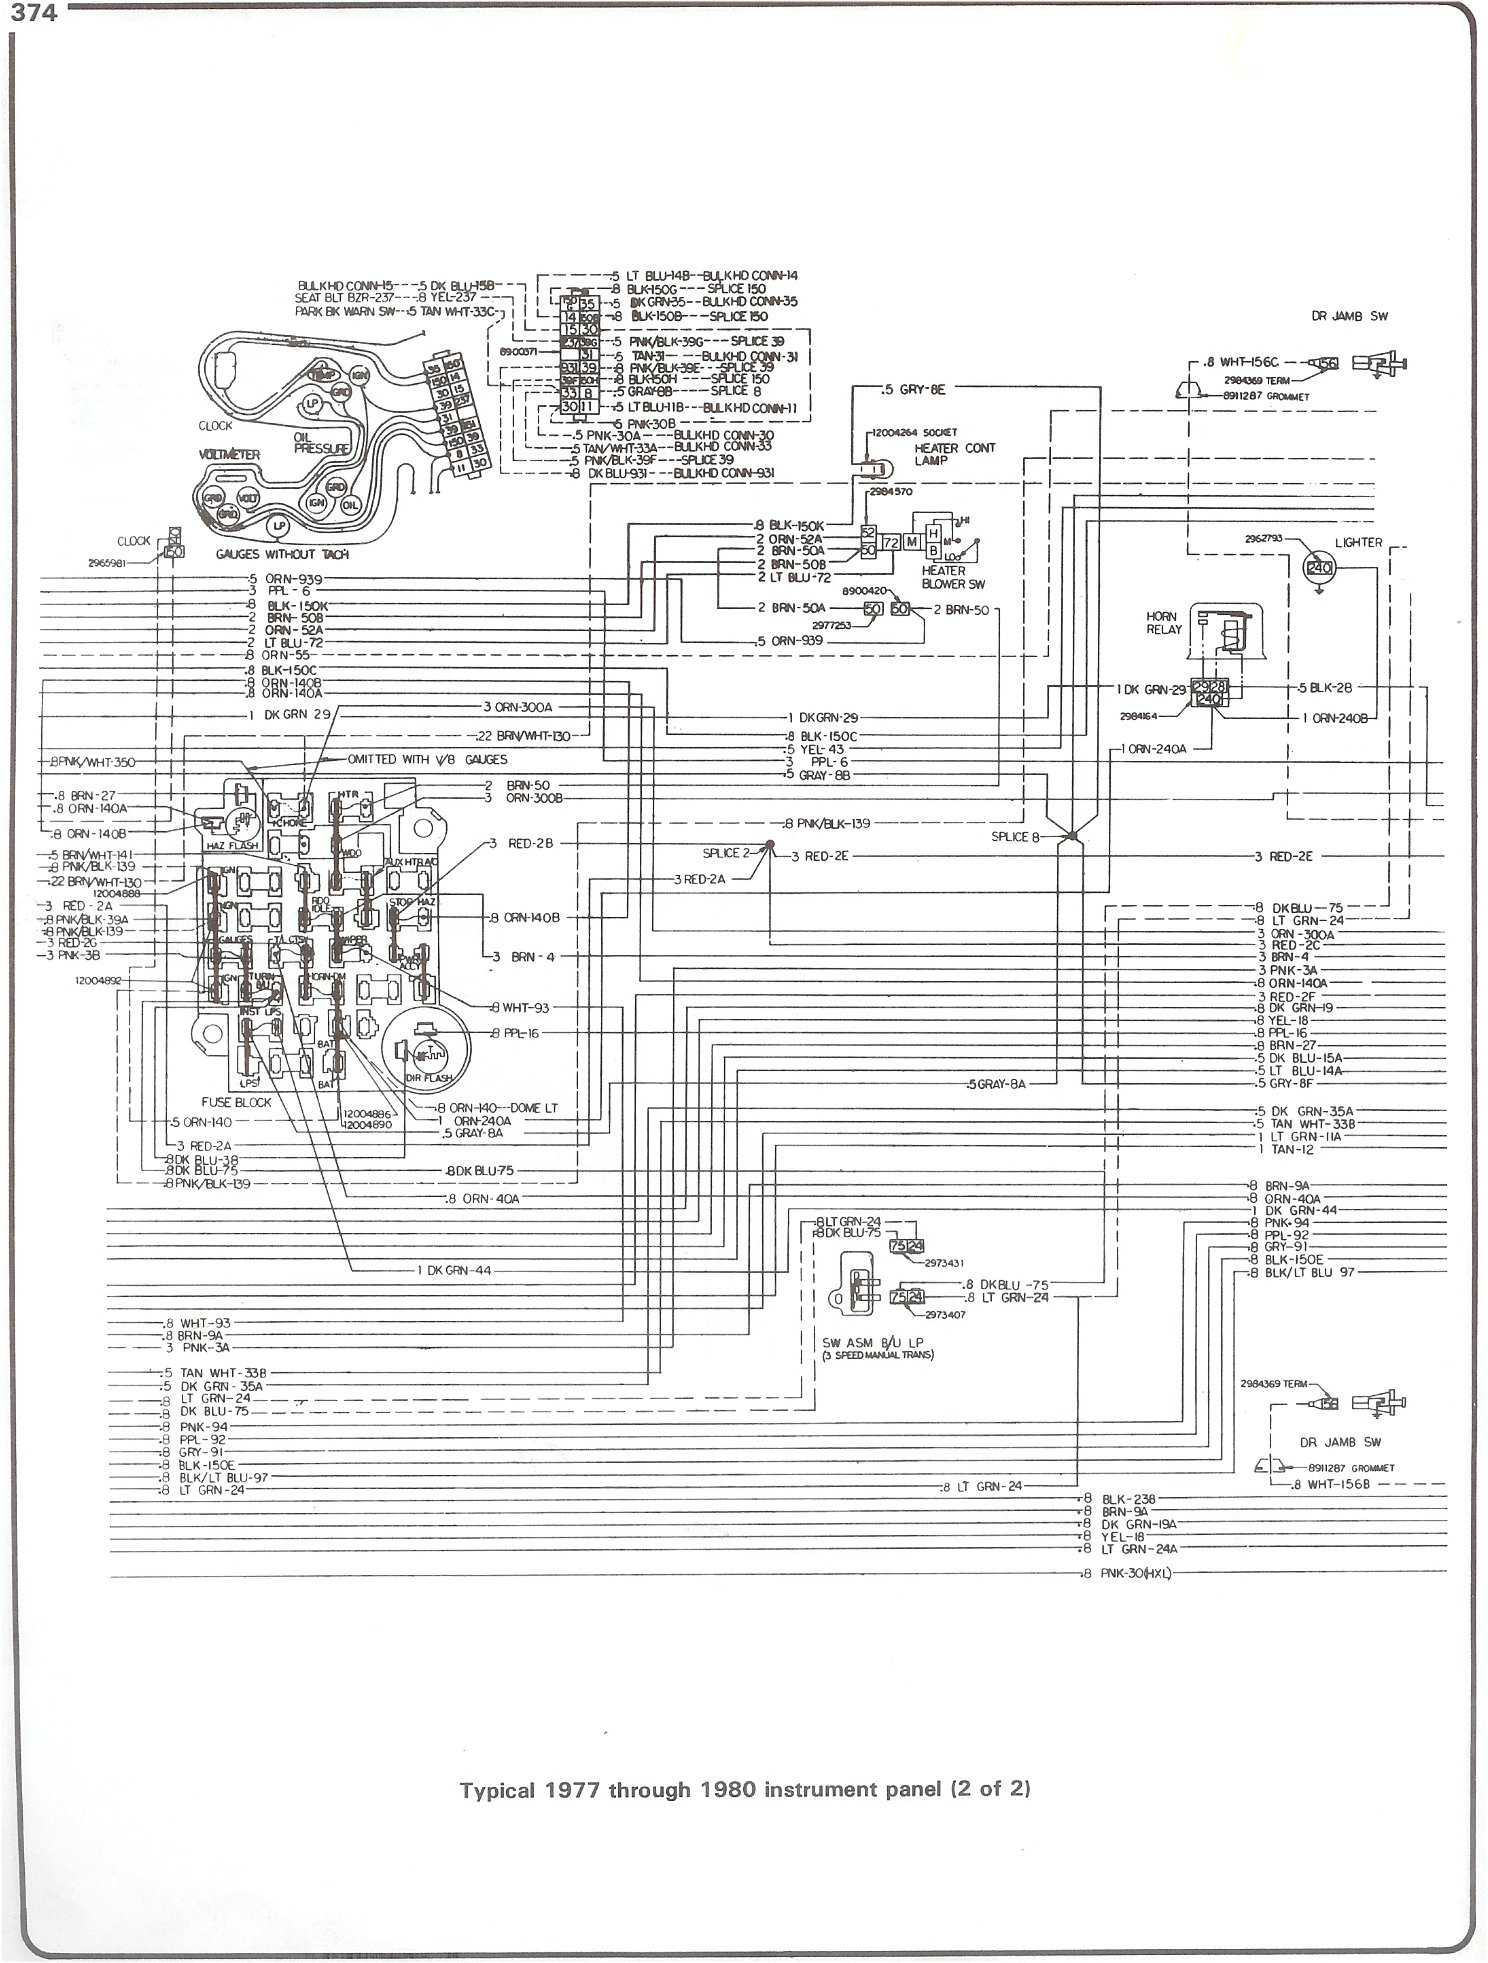 77 80_instrument_pg2 1978 chevy truck wiring diagram chevy malibu ignition wiring 1978 chevy truck fuse box diagram at reclaimingppi.co